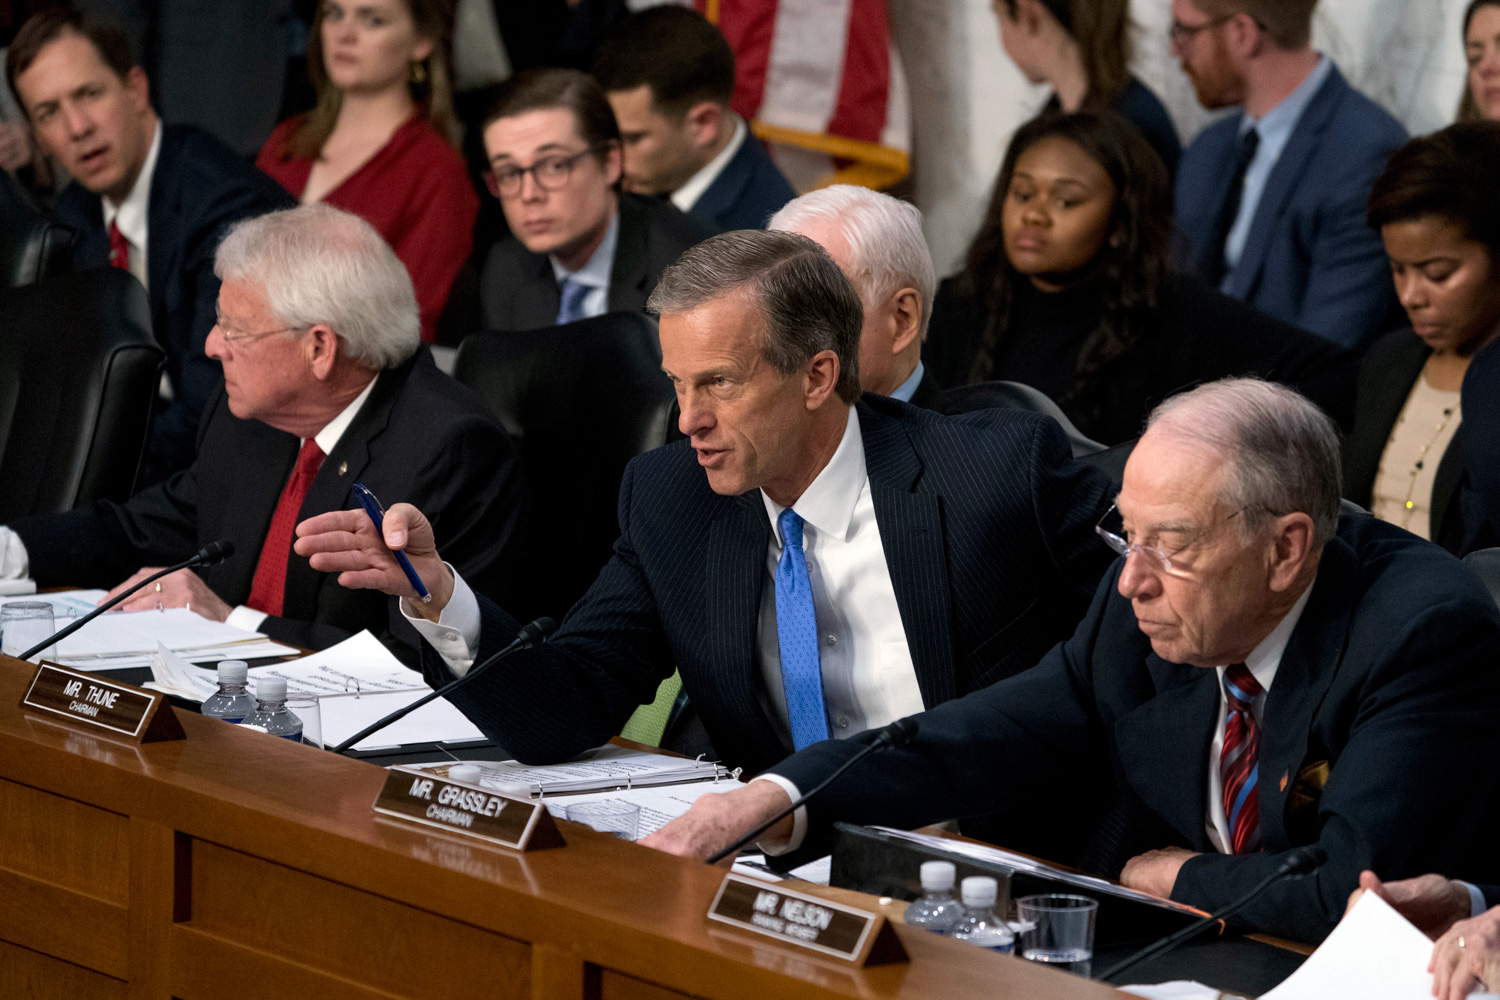 "<div class=""meta image-caption""><div class=""origin-logo origin-image none""><span>none</span></div><span class=""caption-text"">Sen. John Thune, R-S.D., center, questions Facebook CEO Mark Zuckerberg as he testifies before a joint hearing of the Commerce and Judiciary Committees on Capitol Hill. (Andrew Harnik/AP Photo)</span></div>"